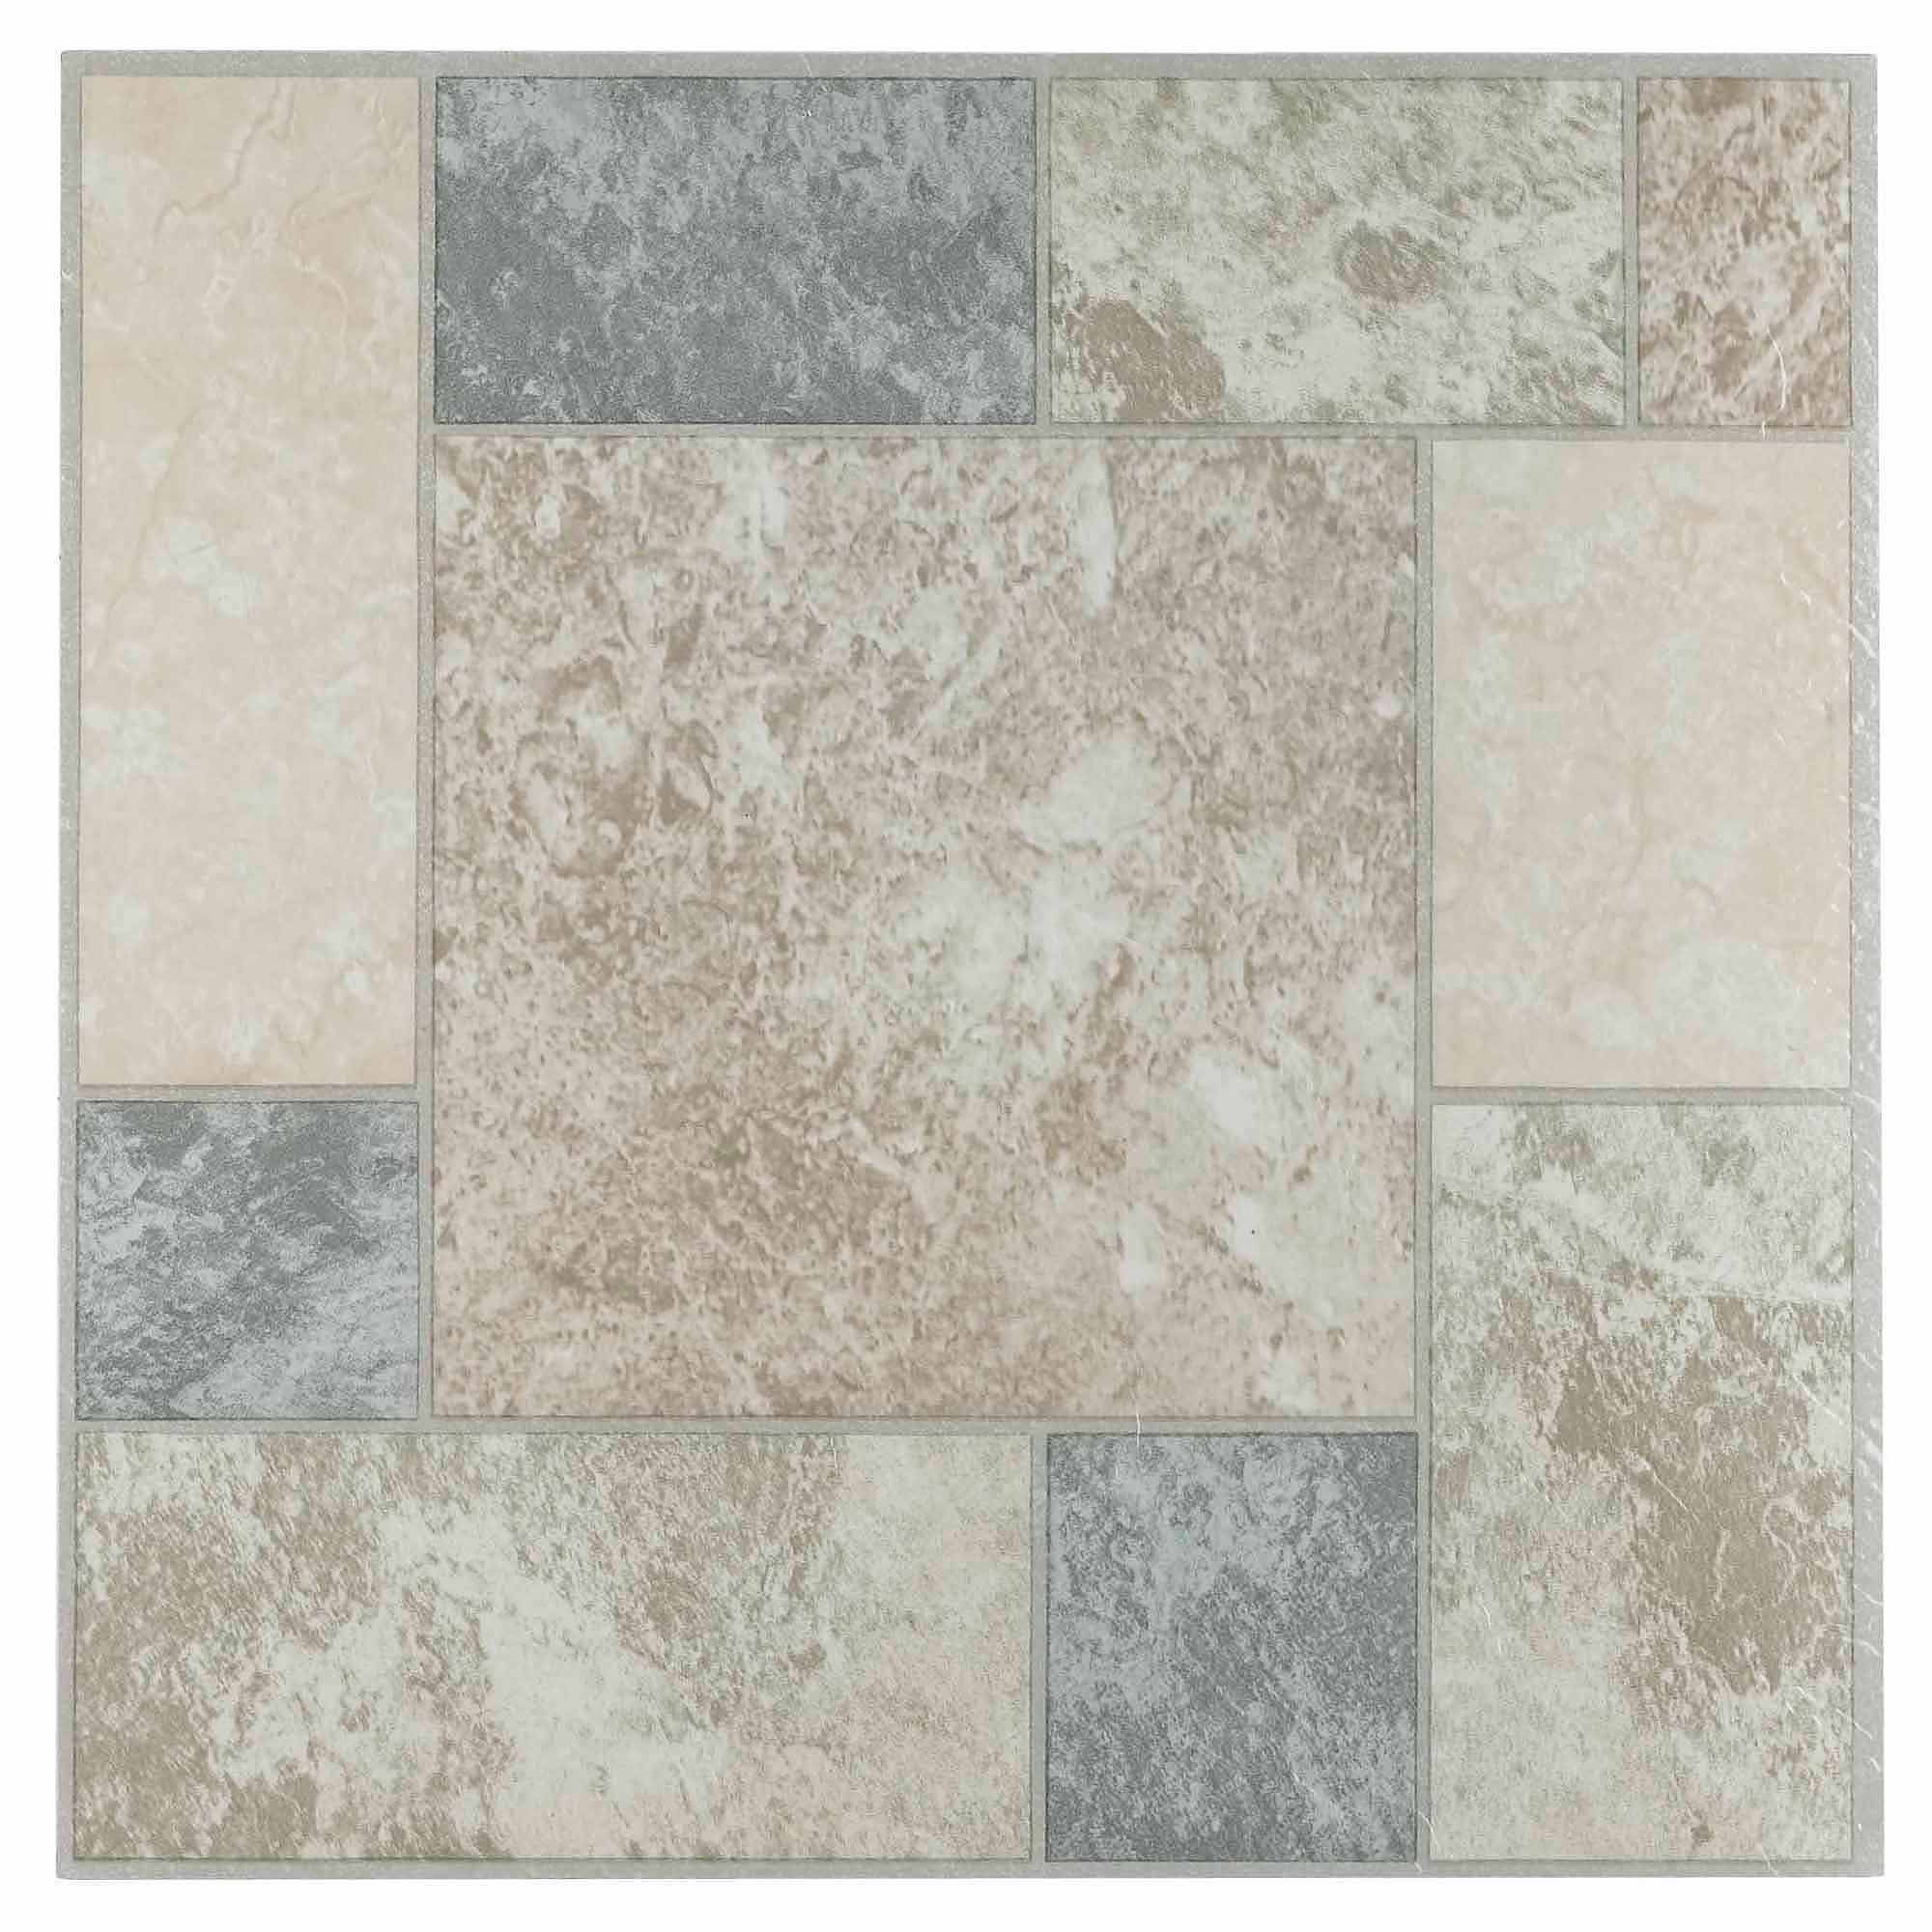 Nexus carrera marble 12x12 self adhesive vinyl floor tile 20 tiles nexus carrera marble 12x12 self adhesive vinyl floor tile 20 tiles20 sq ft walmart dailygadgetfo Choice Image